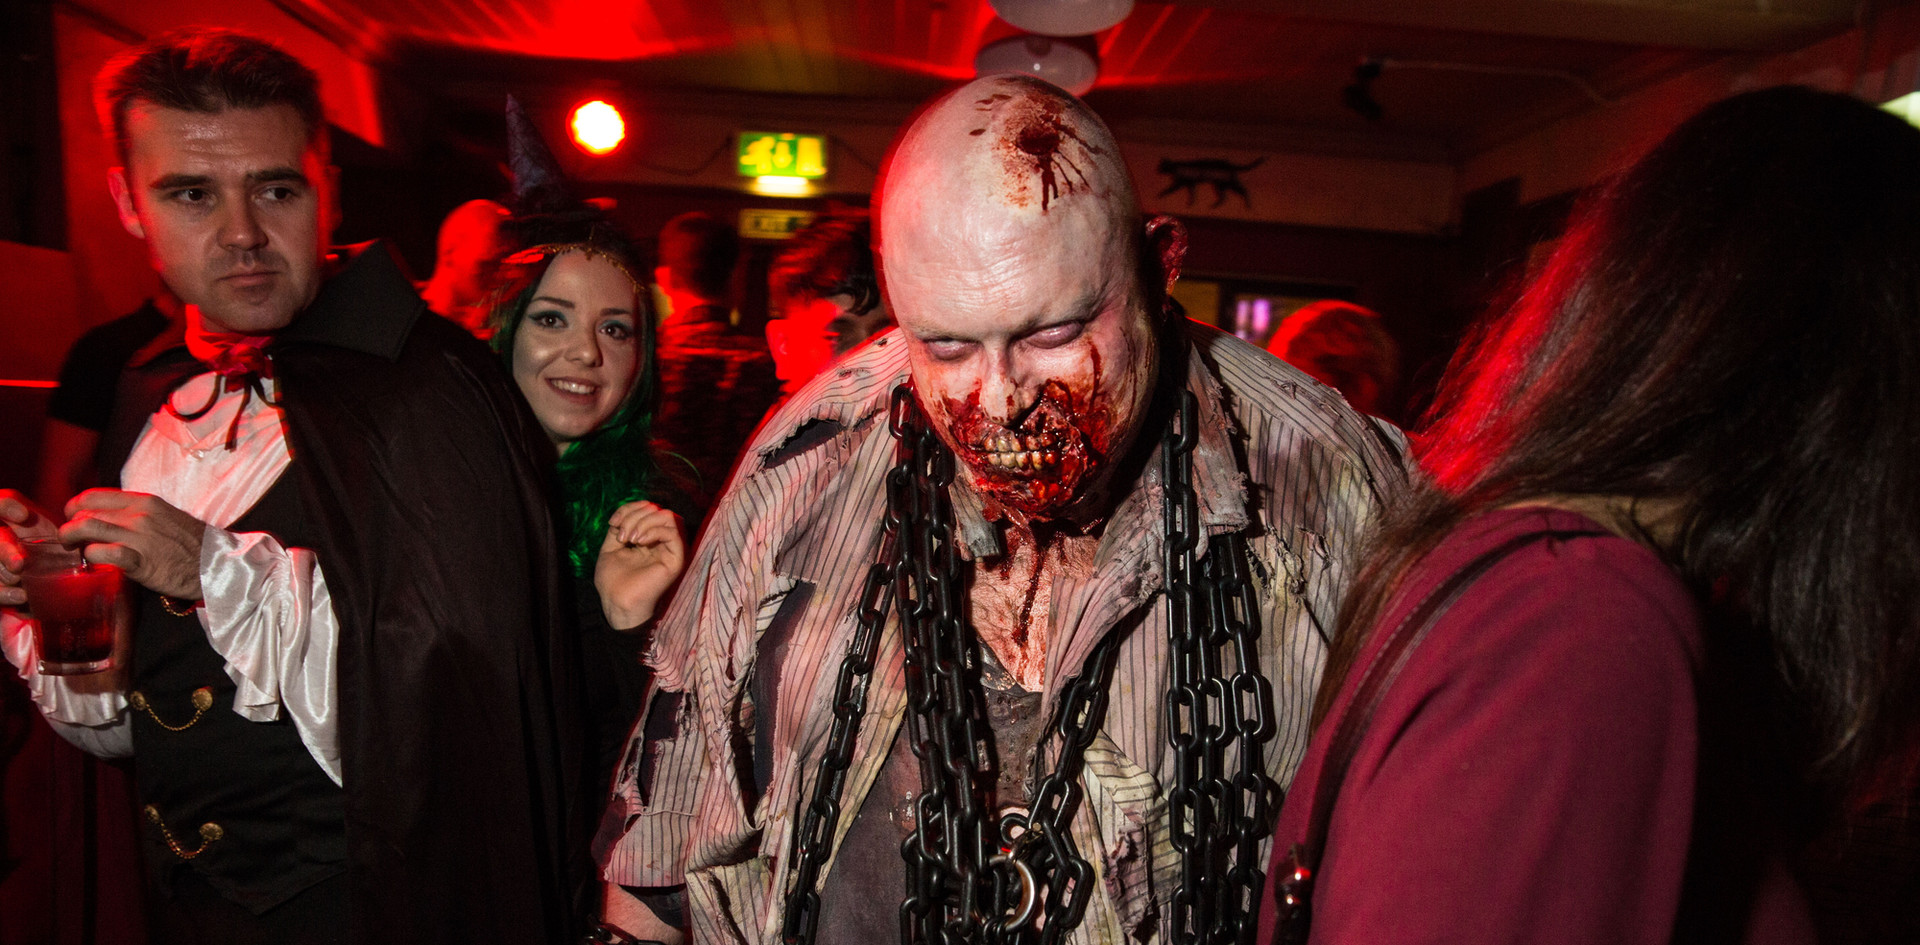 Clive the Zombie at Halloween